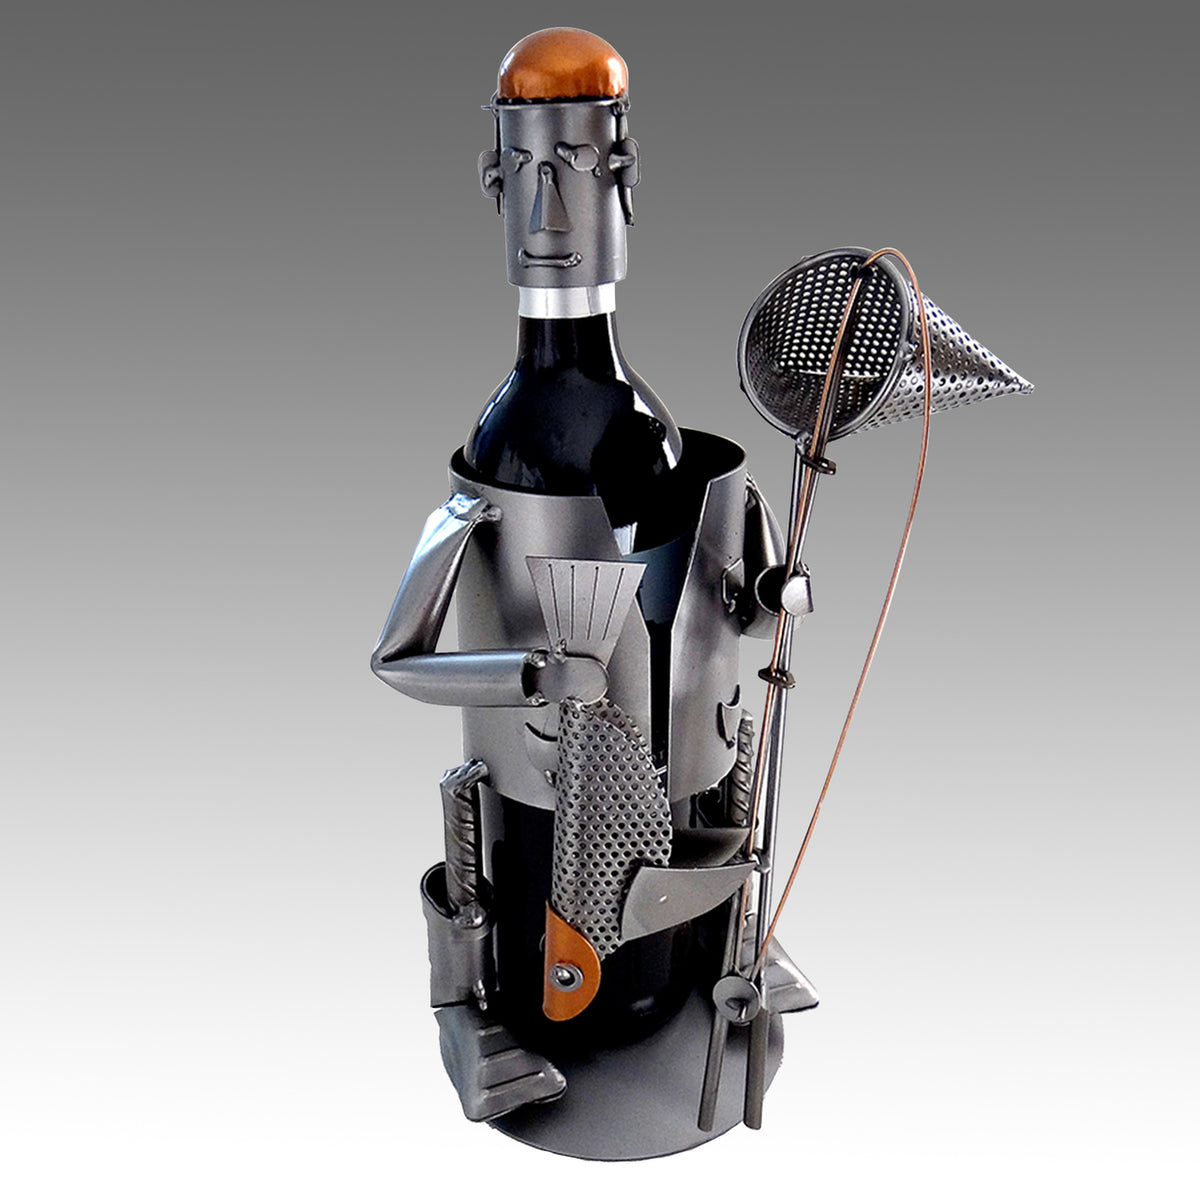 Fisherman With Catch of the Day Wine Bottle Holder